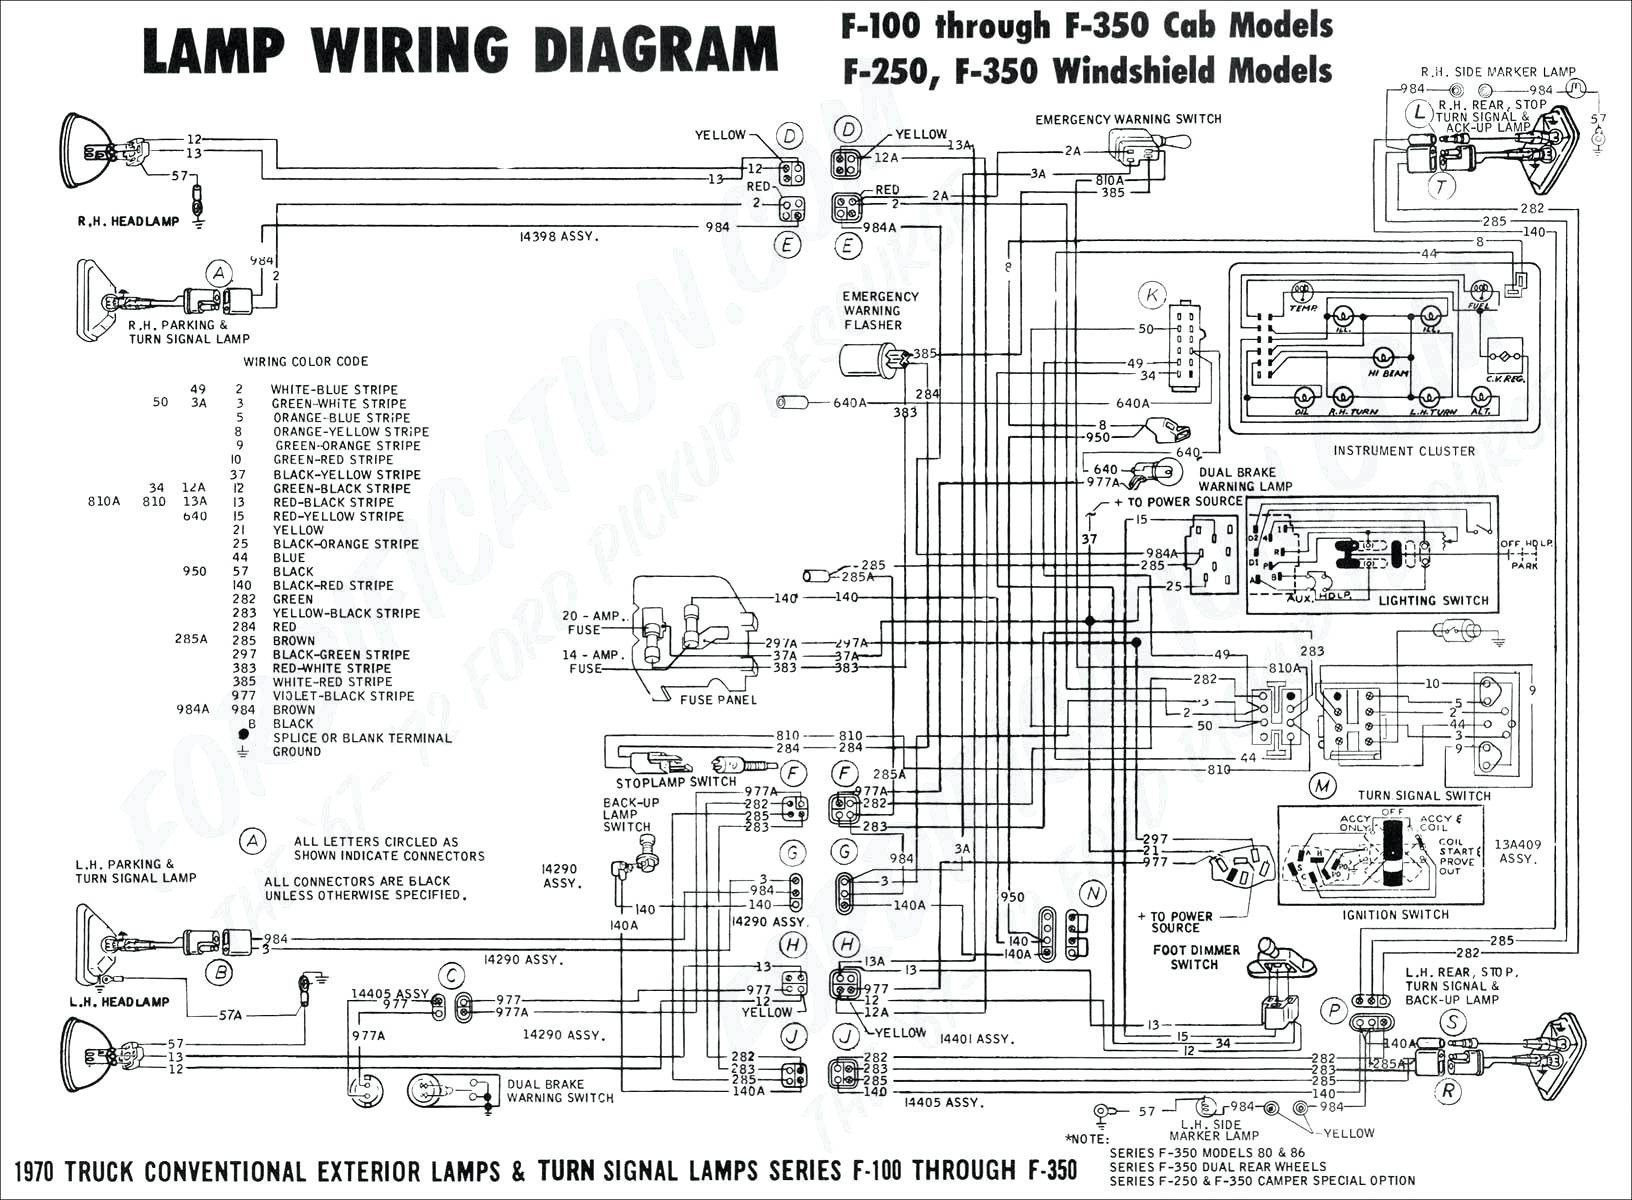 Obd2 Wire Diagram | Wiring Diagram - Data Link Connector Wiring Diagram